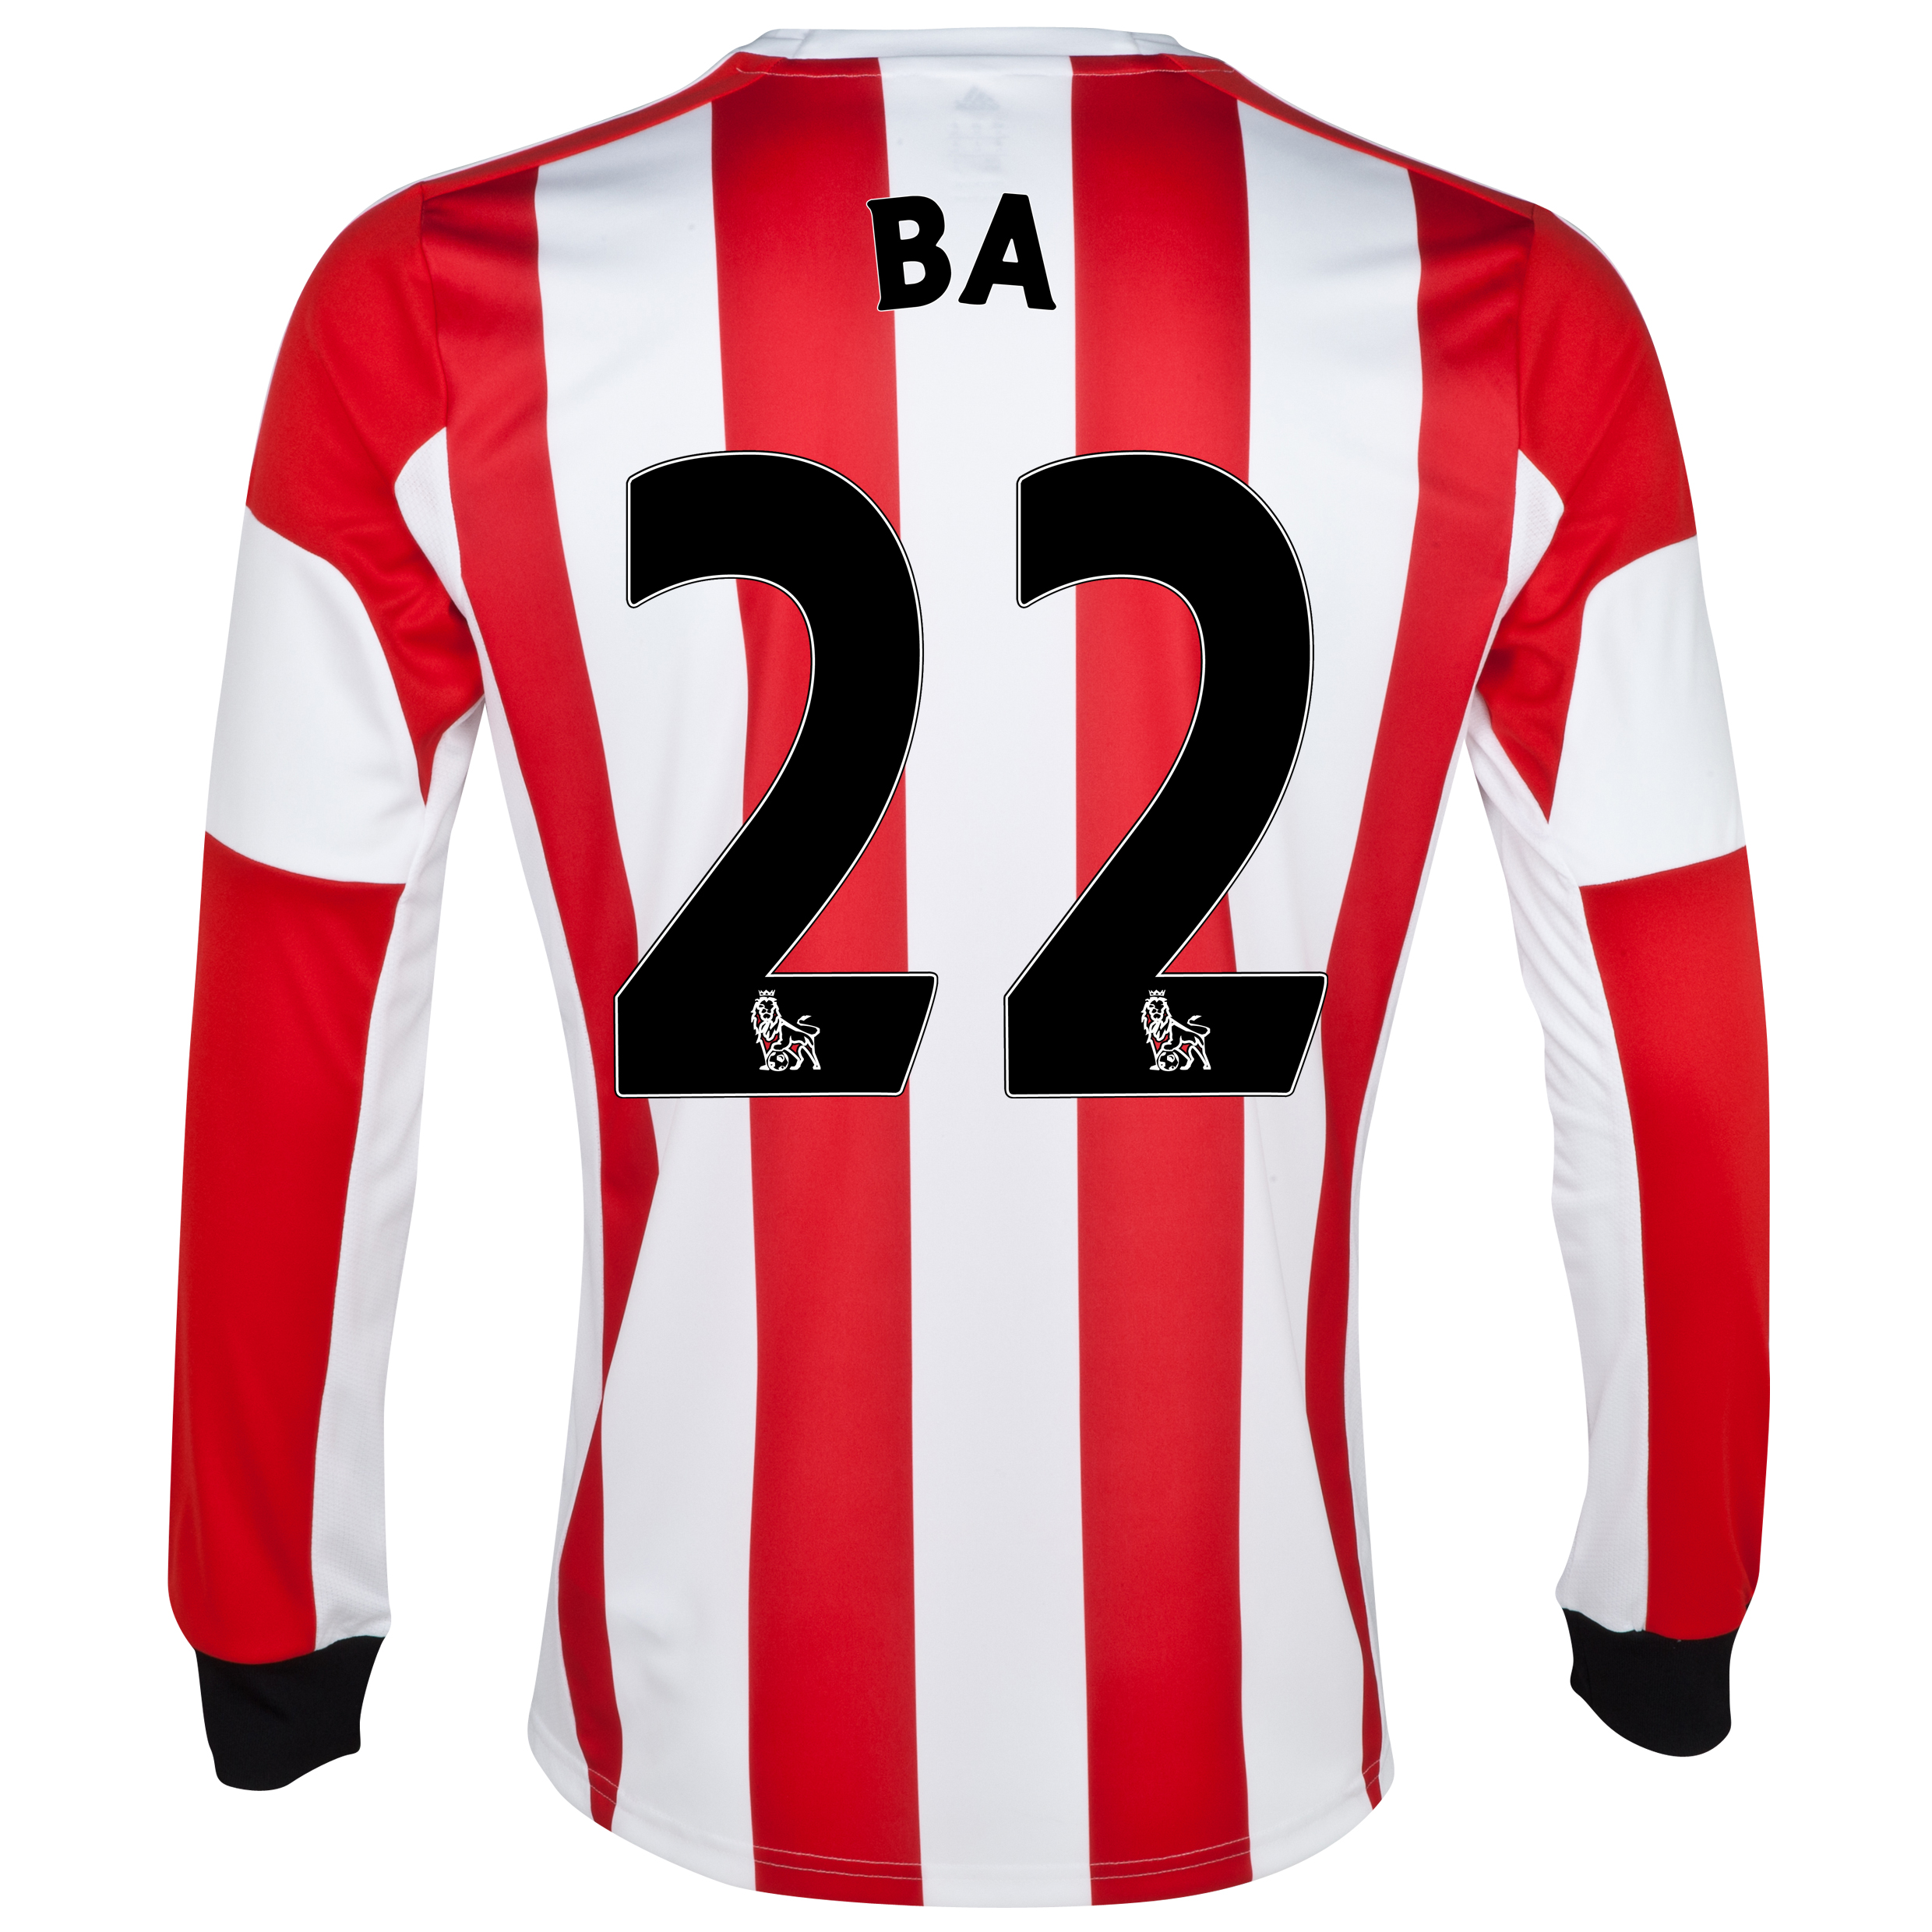 Sunderland Home Shirt 2013/14 - Long Sleeved - Junior with Ba 22 printing